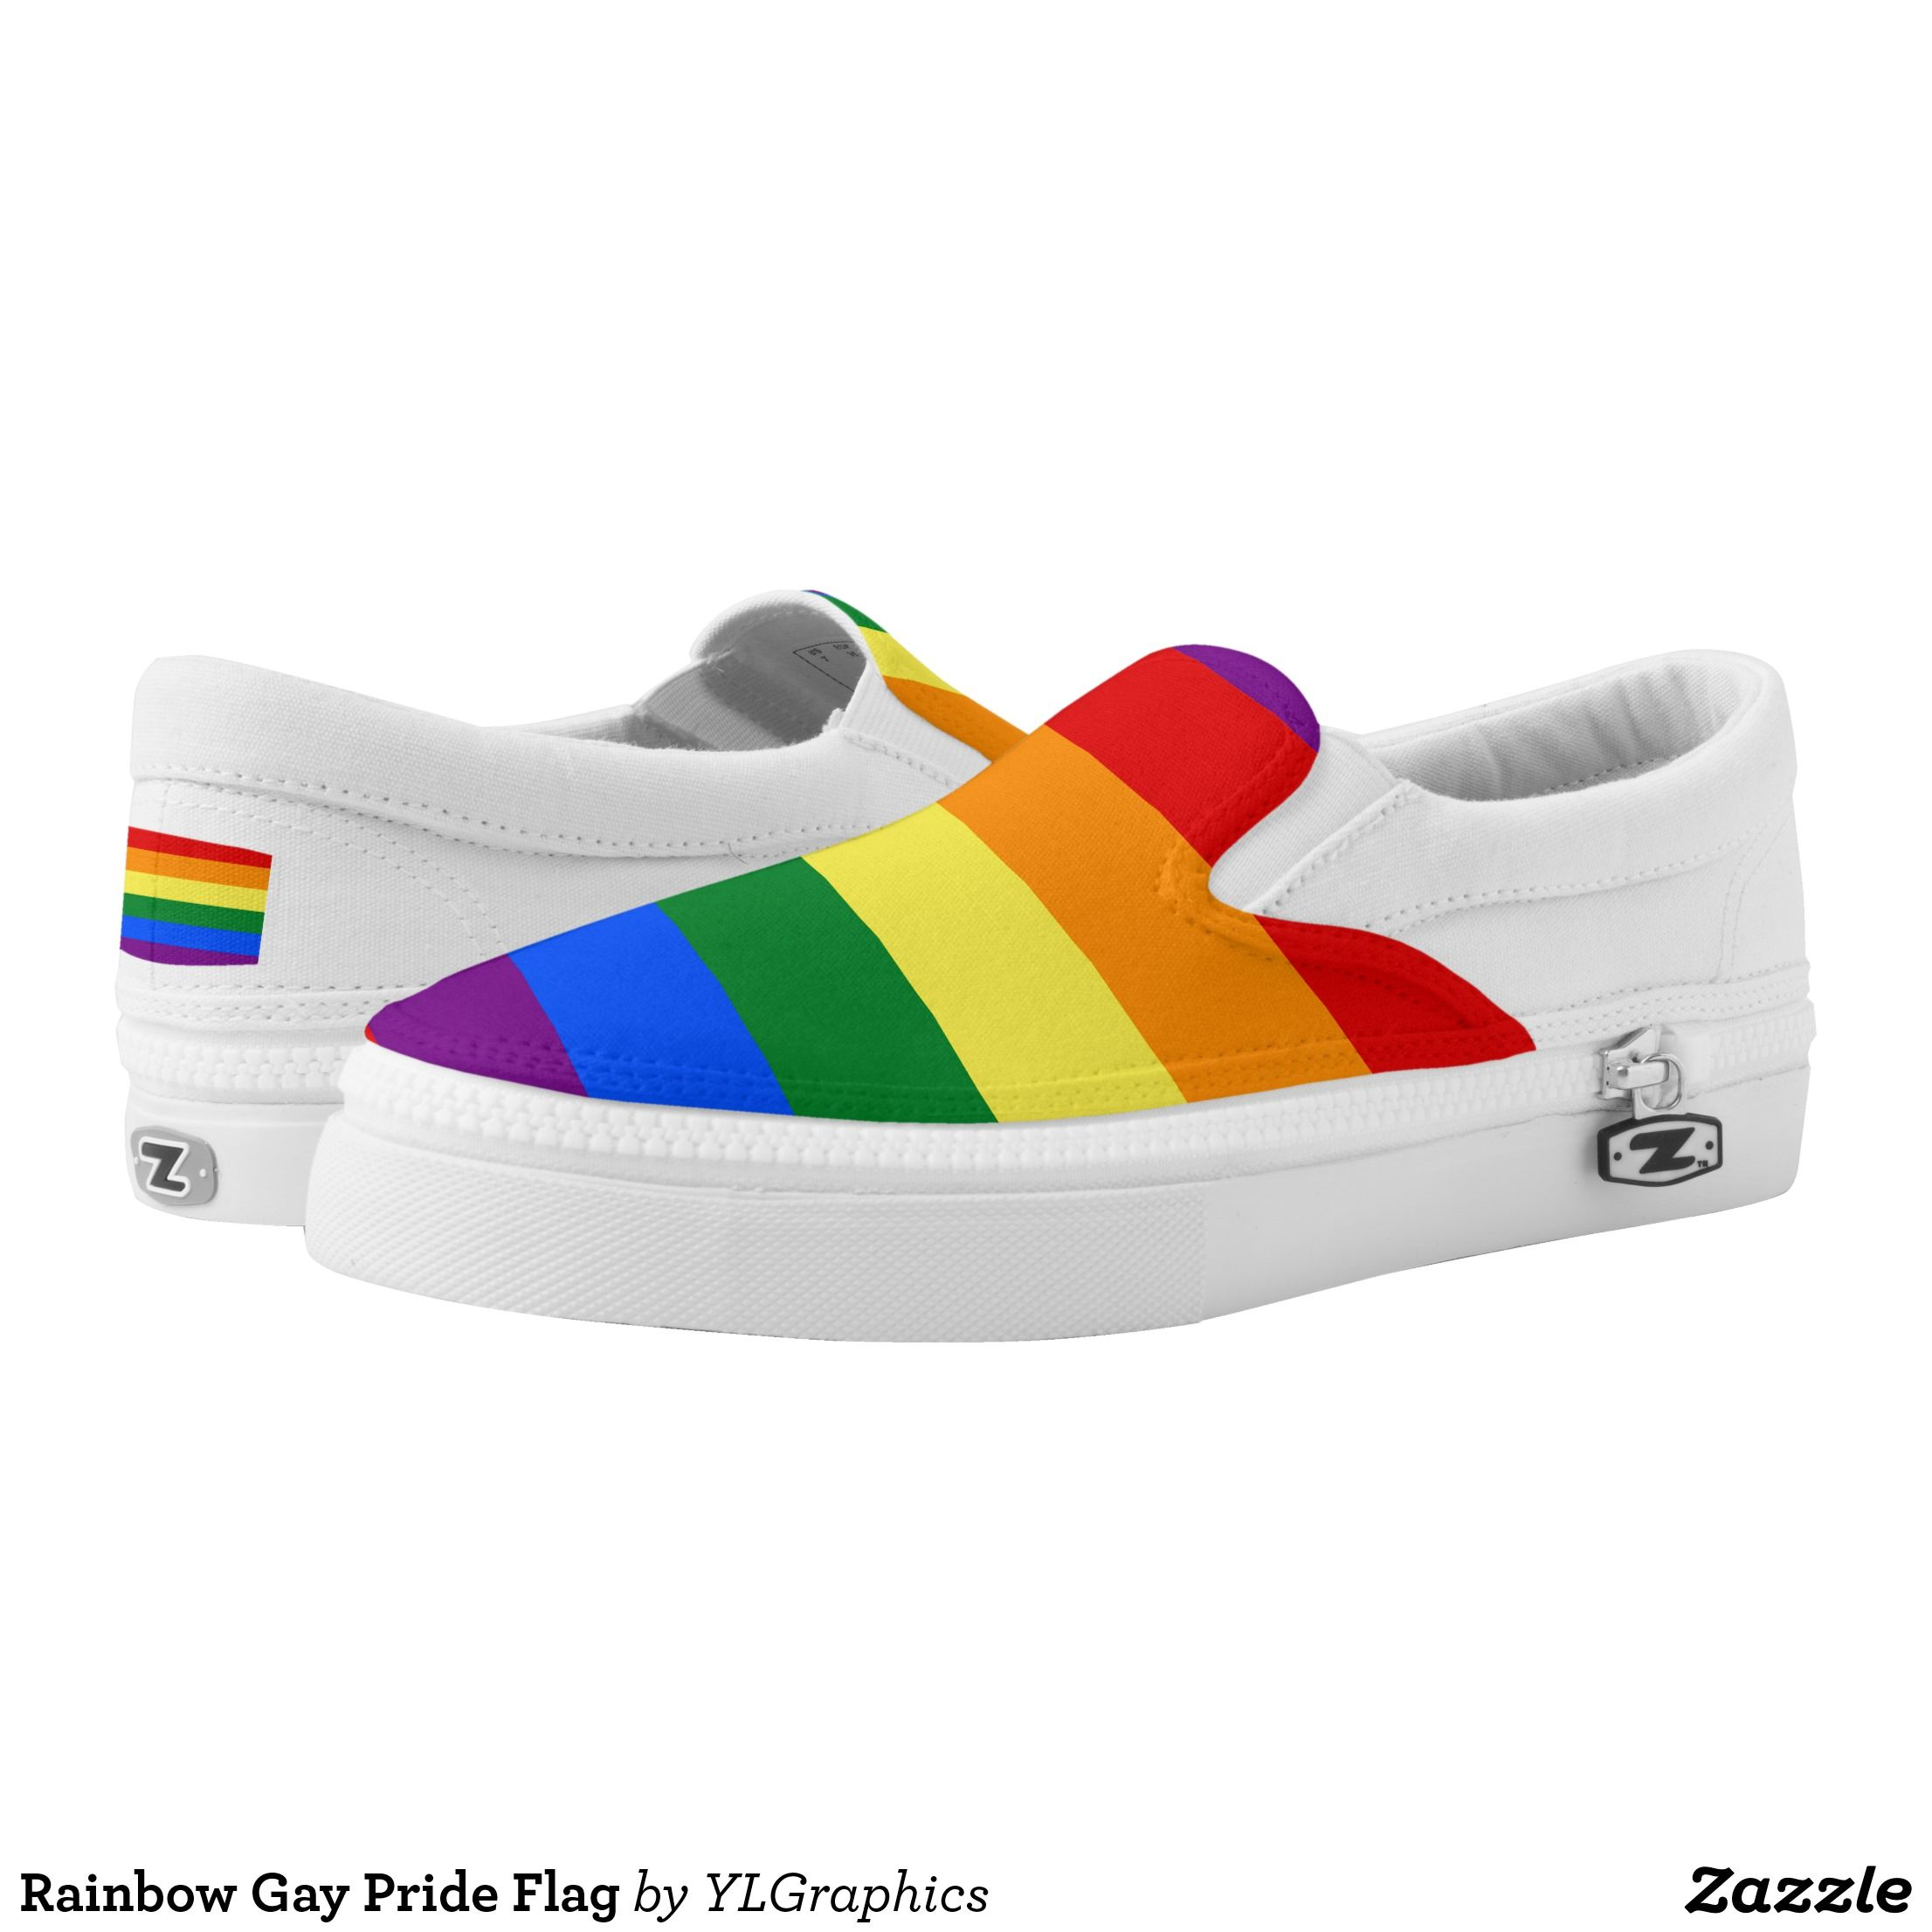 63096c137fa4 Rainbow Gay Pride Flag Slip-On Sneakers - Canvas-Top Rubber-Sole Athletic  Shoes By Talented Fashion And Graphic Designers - #shoes #sneakers  #footwear ...